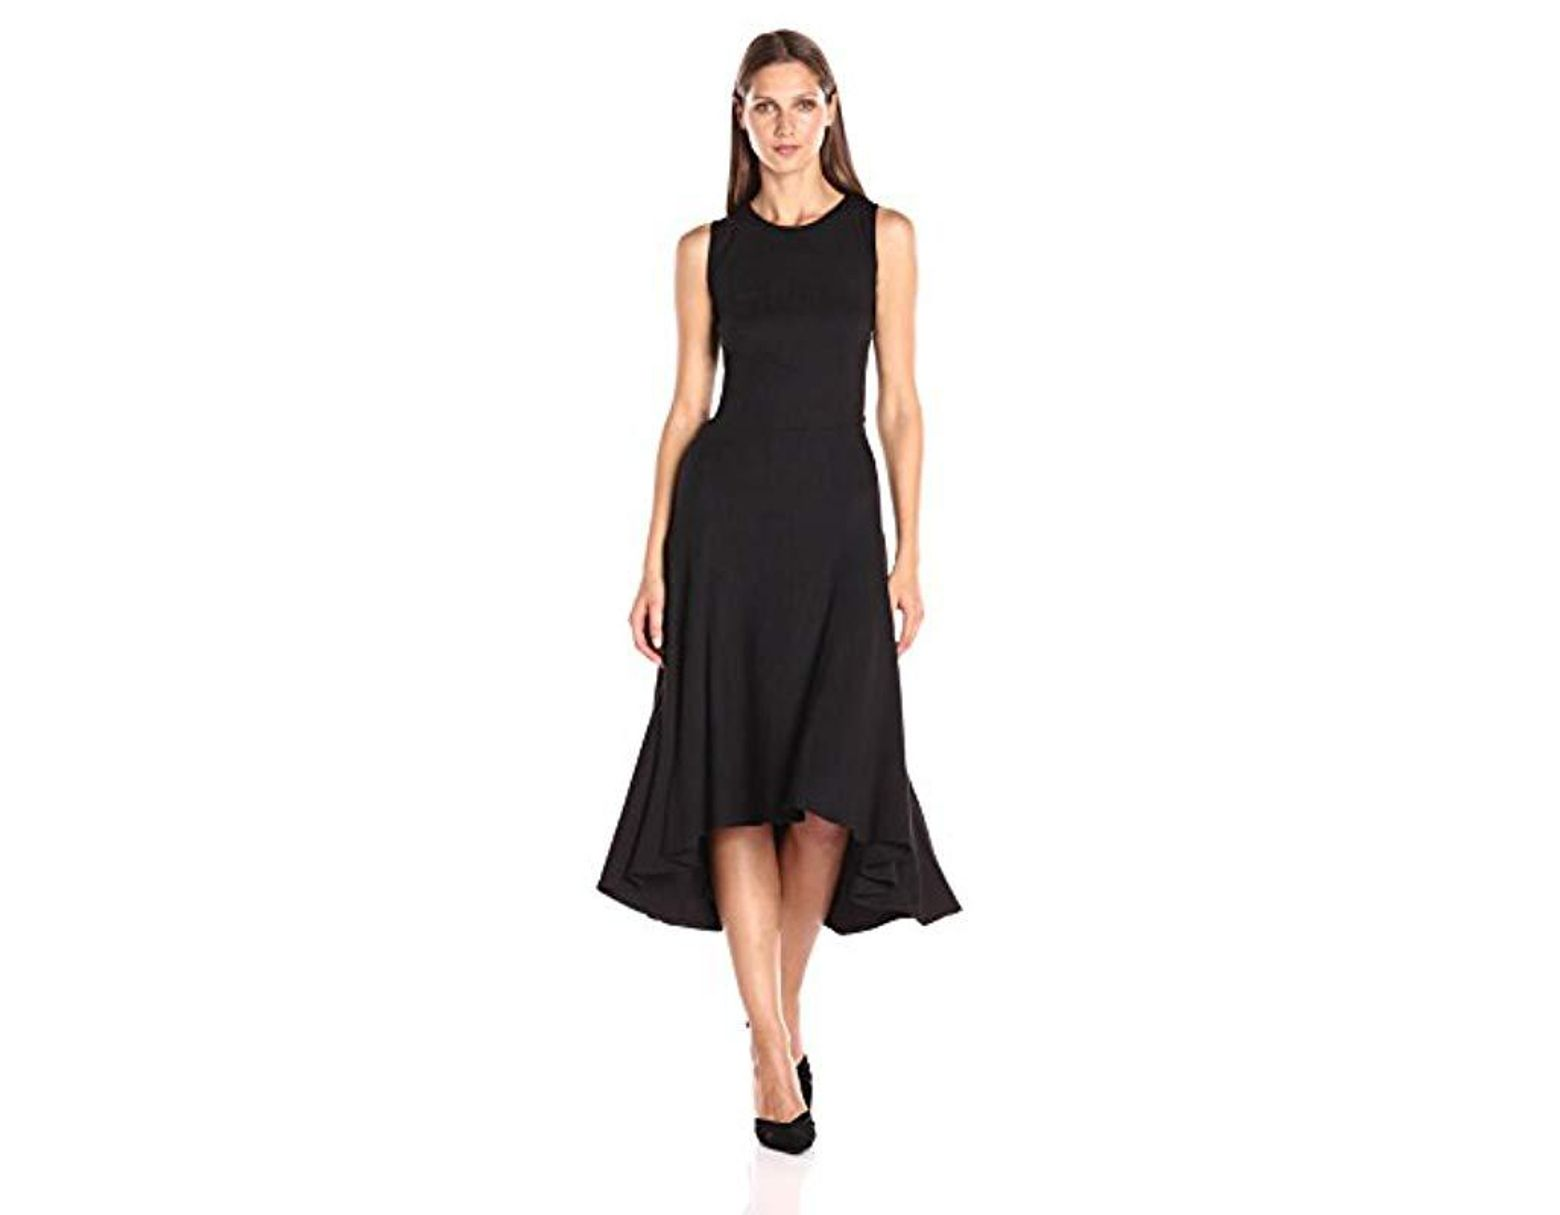 f421c4ba566e Nanette Nanette Lepore Knit Slvls Fit And Flair W/seamed Skirt & High-low  Hem in Black - Save 9% - Lyst